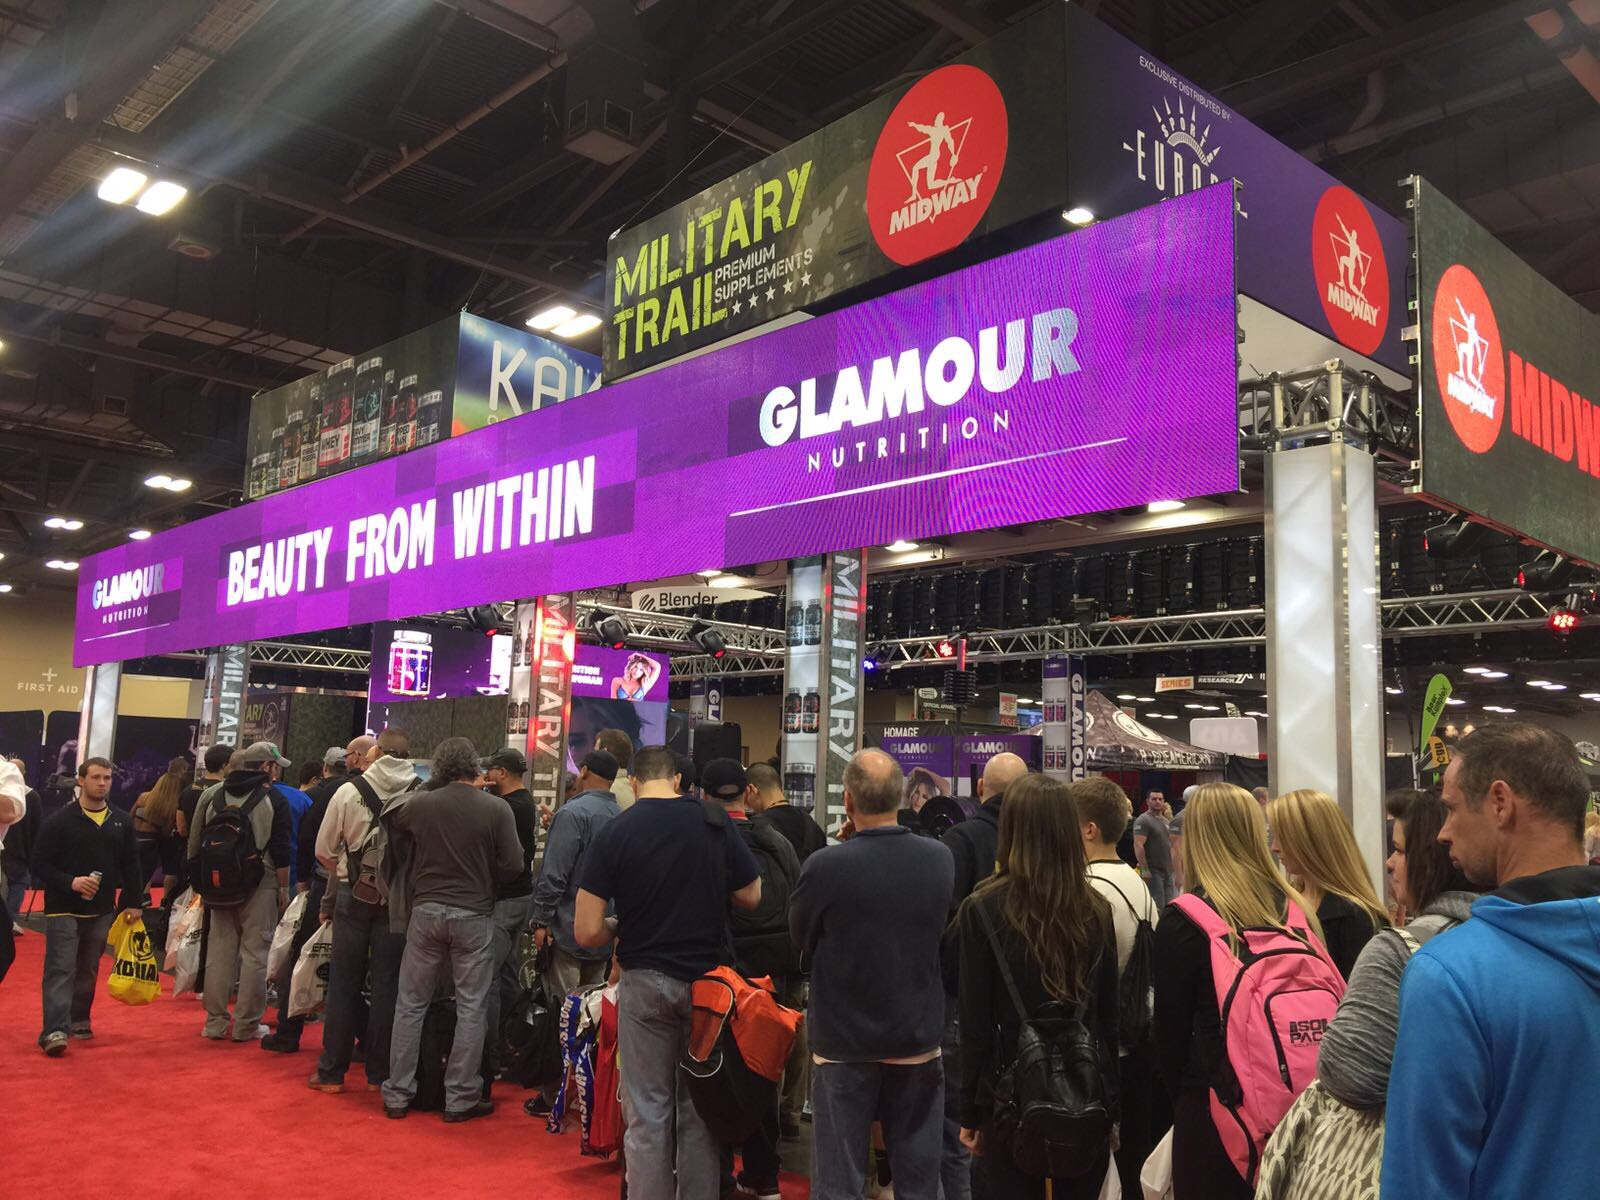 People lining up outside Glamour Nutrition Booth to check<br /> out the products and giveaways.